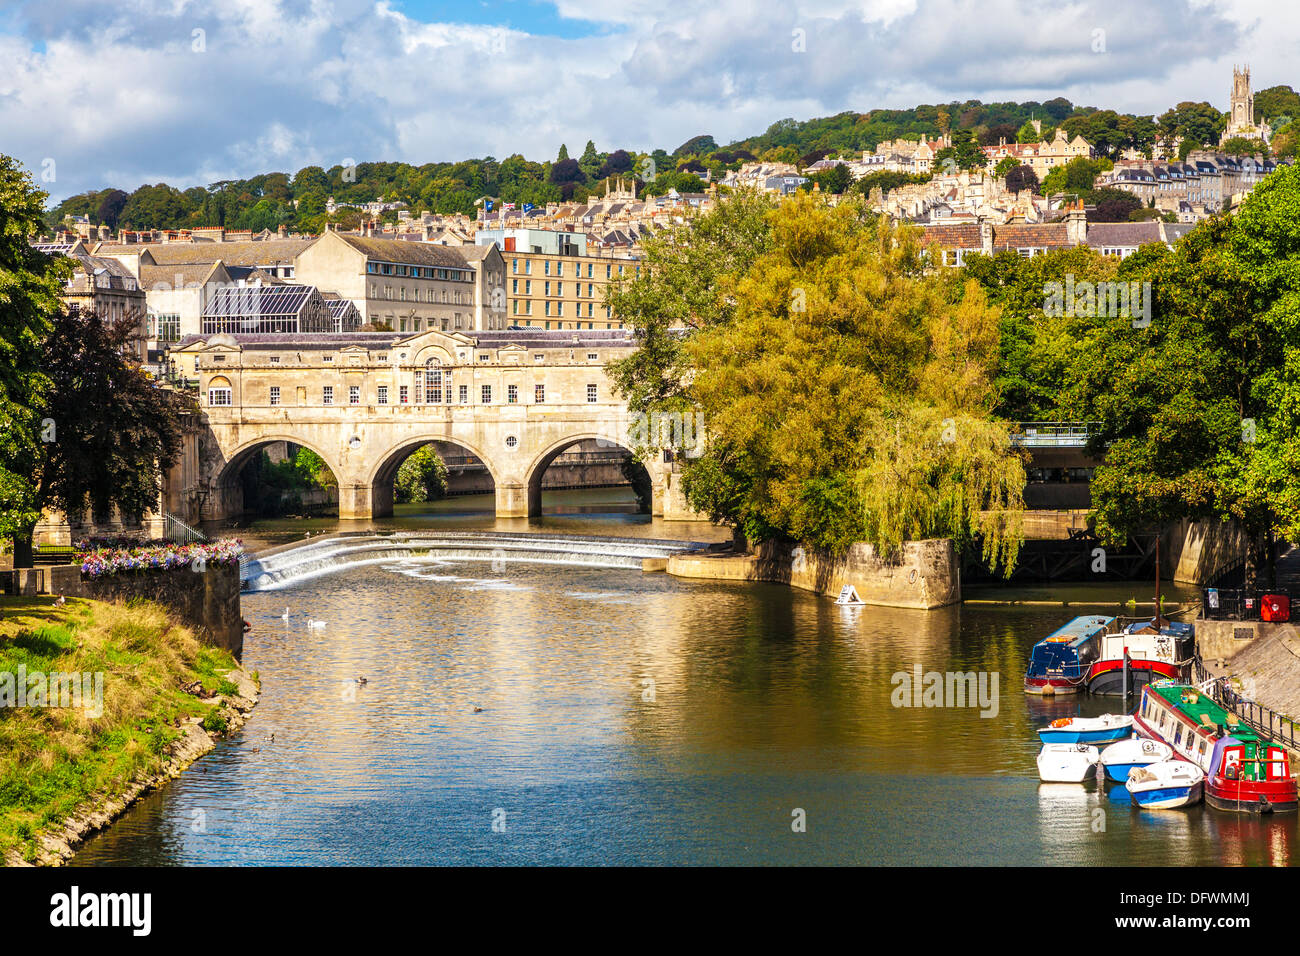 View of the Palladian Pulteney Bridge and weir in the World Heritage city of Bath in Somerset, UK. - Stock Image